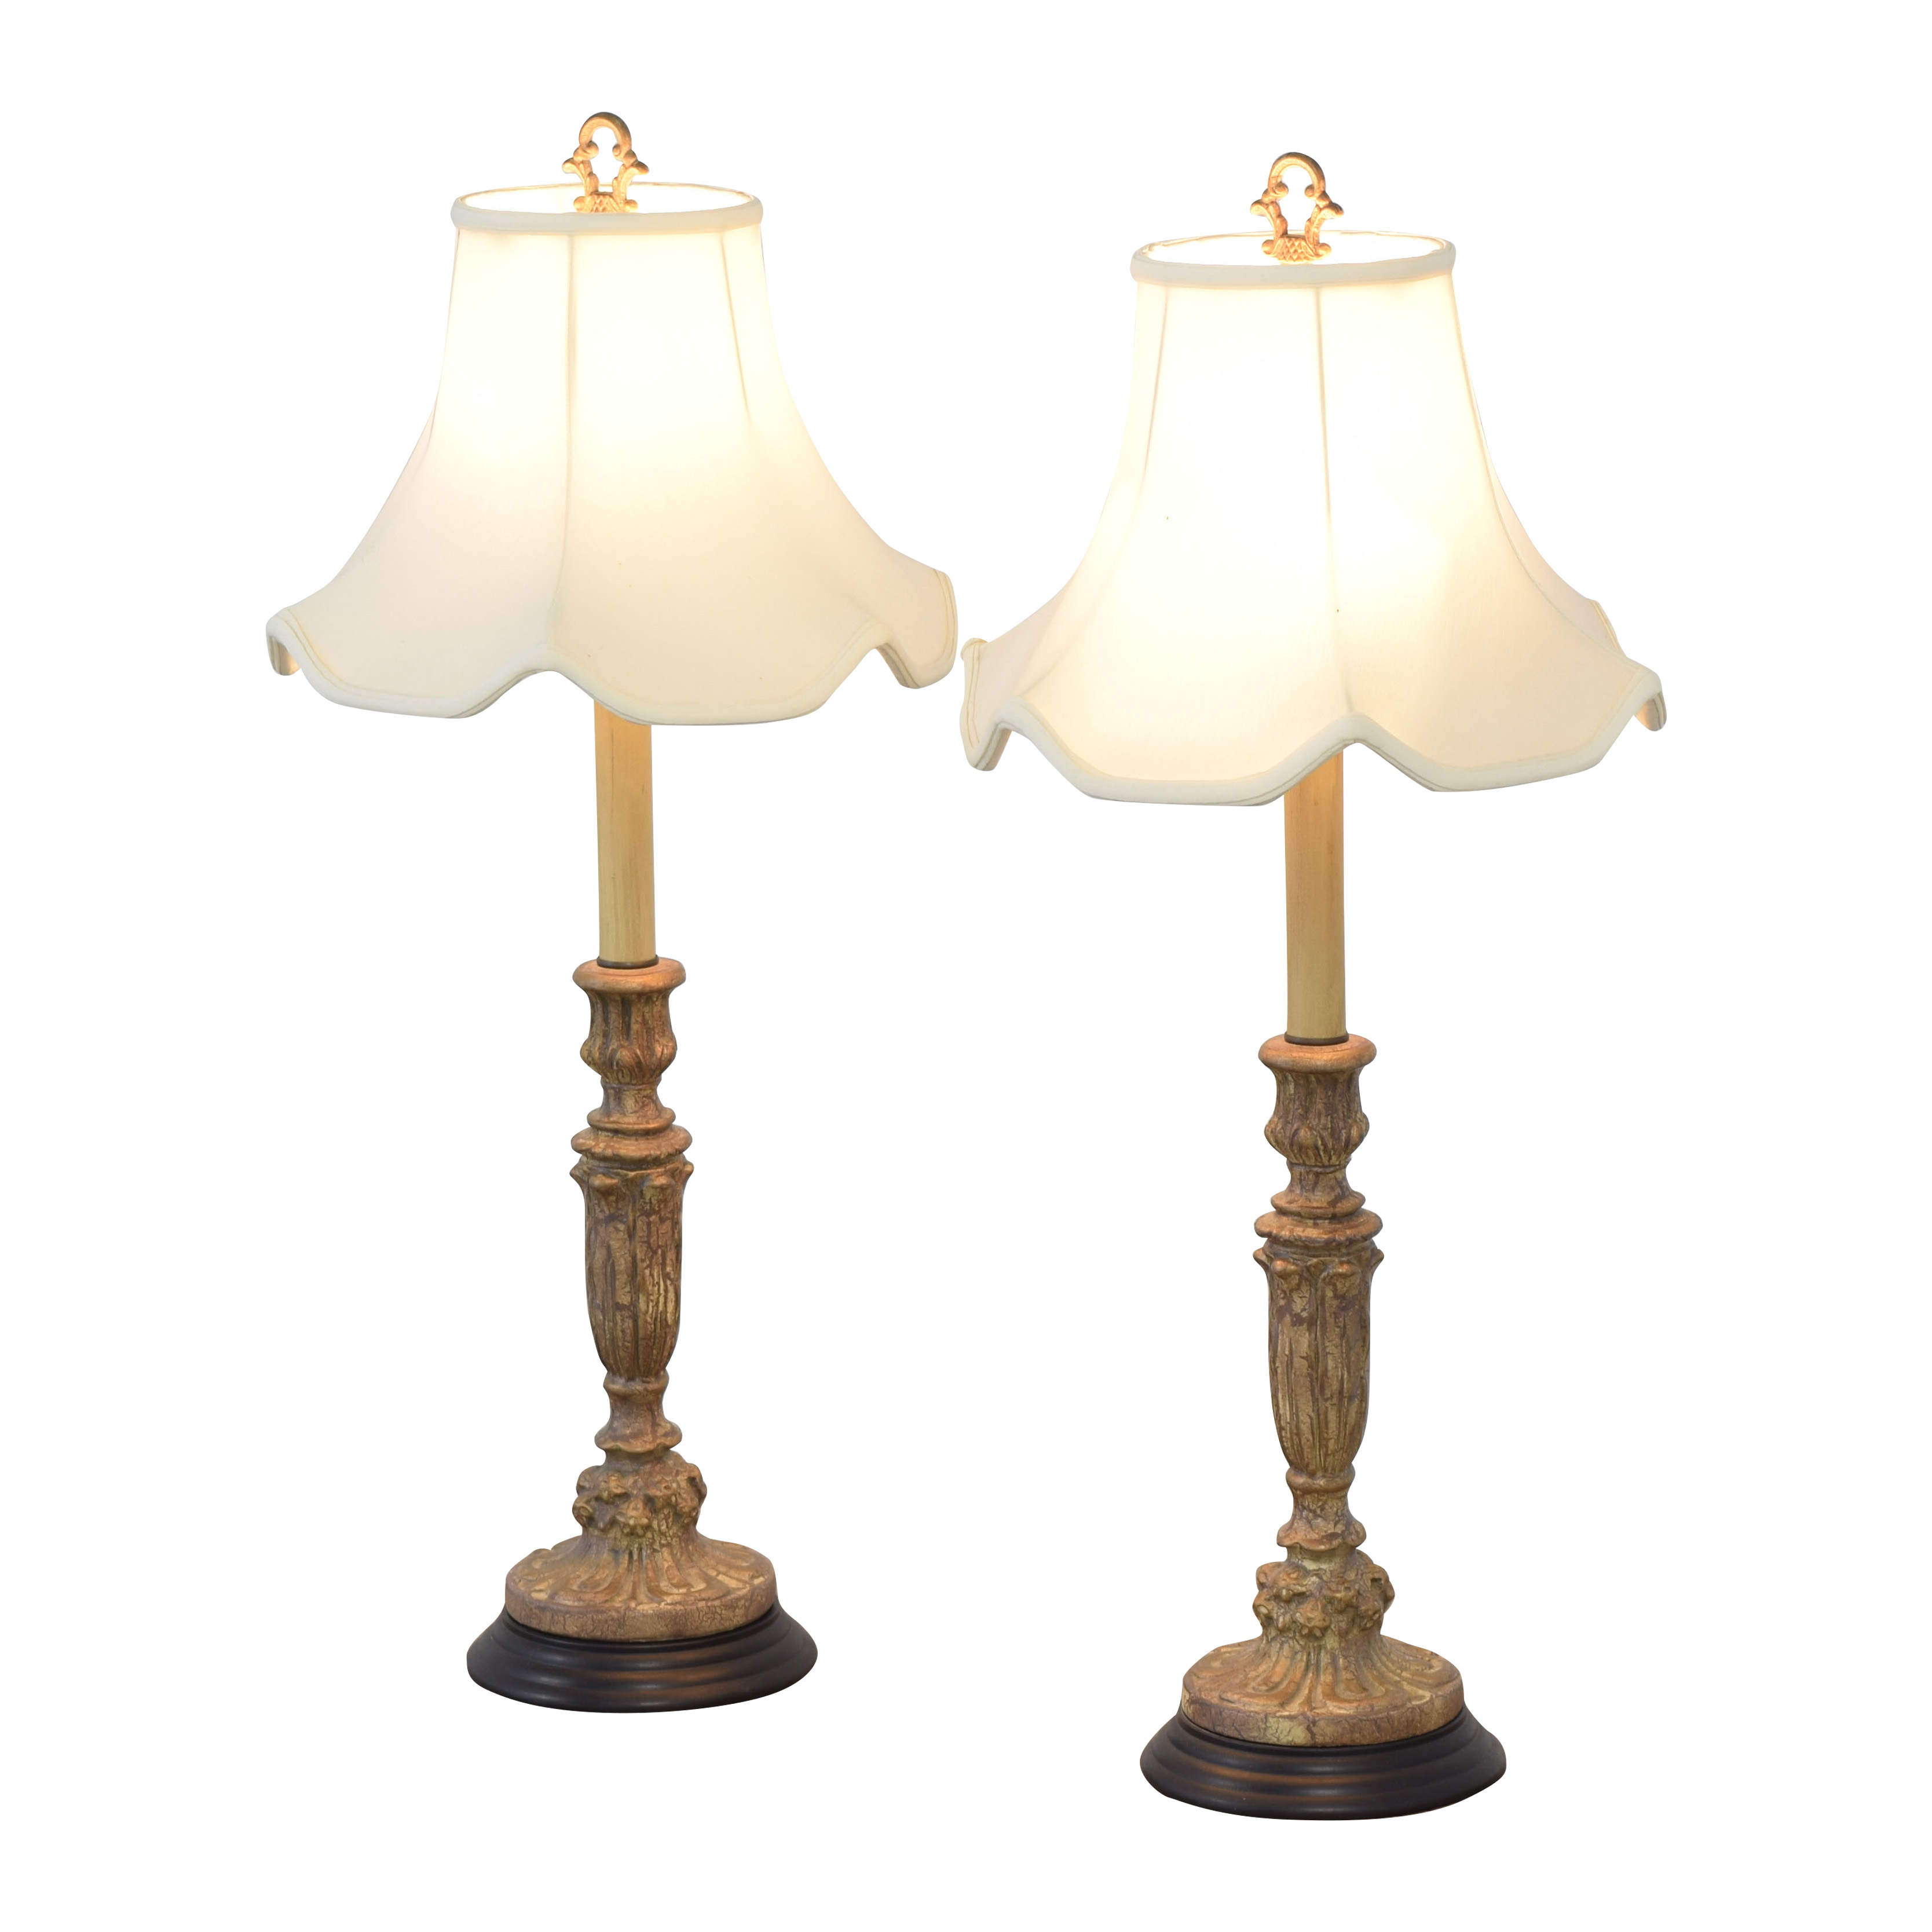 Italian Giltwood Candlestick Table Lamps